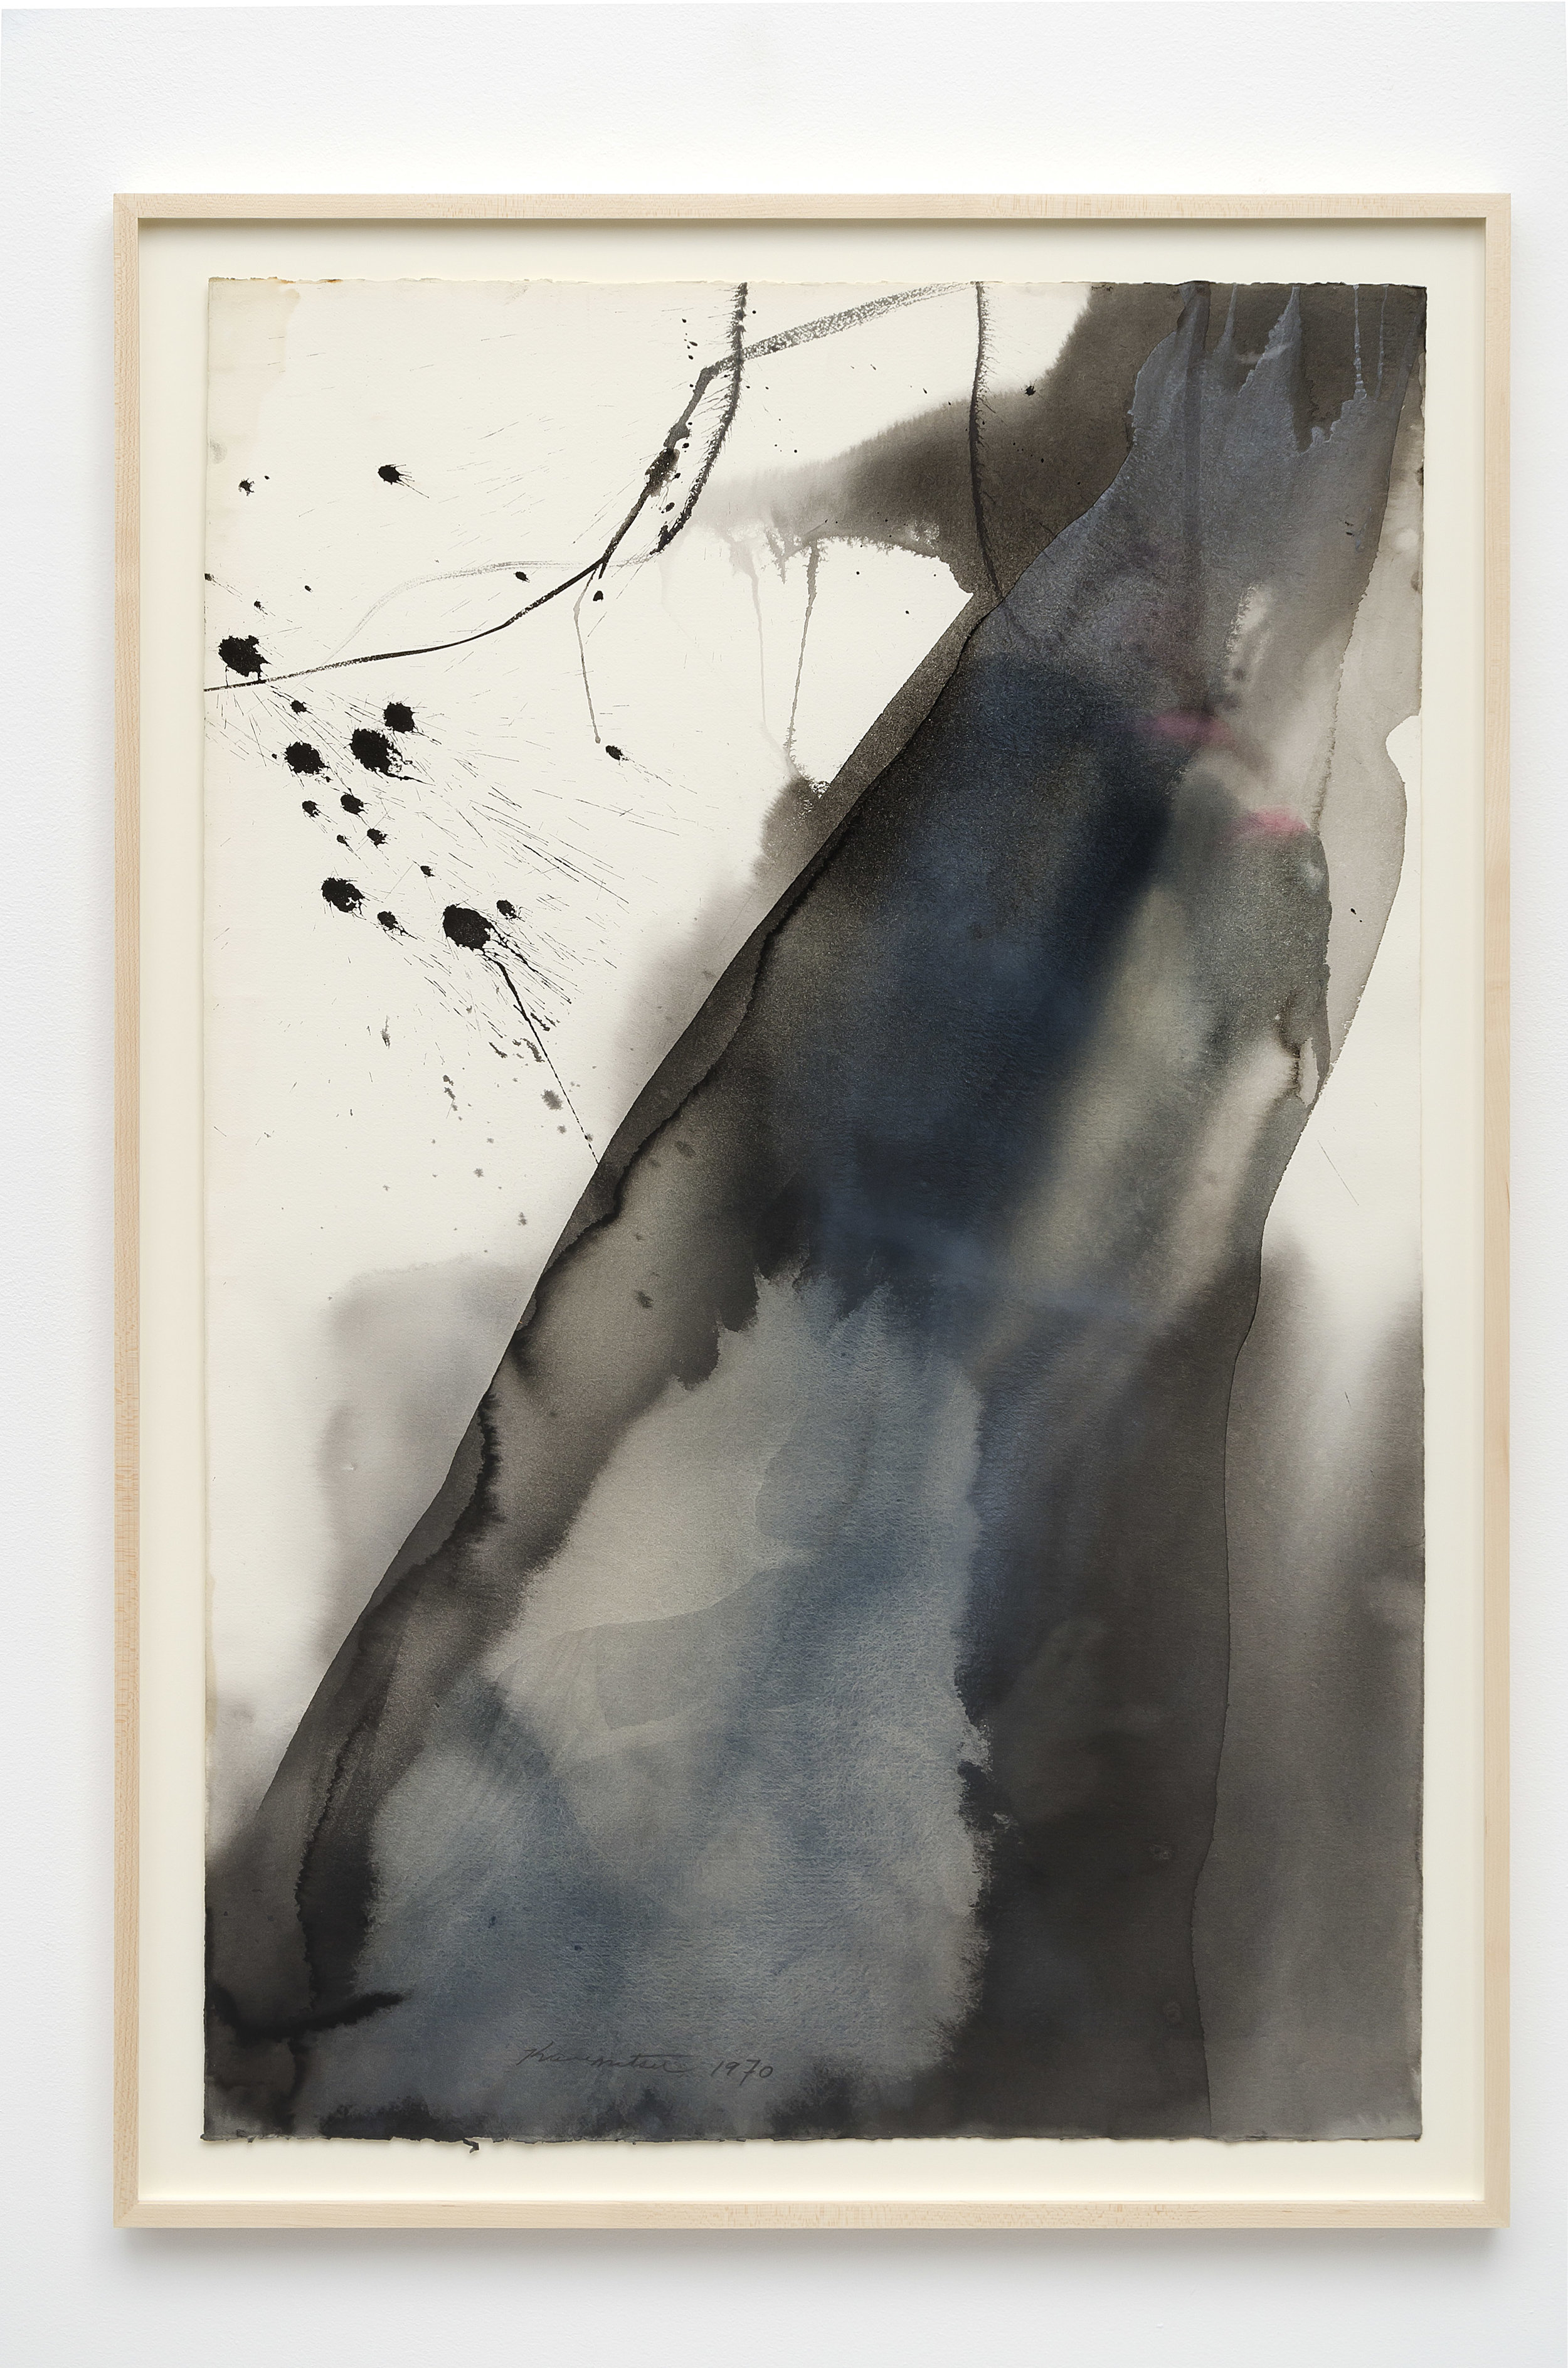 Untitled , 1970 sumi and watercolor on paper 43.75 x 29.25 inches; 111.1 x 74.3 centimeters